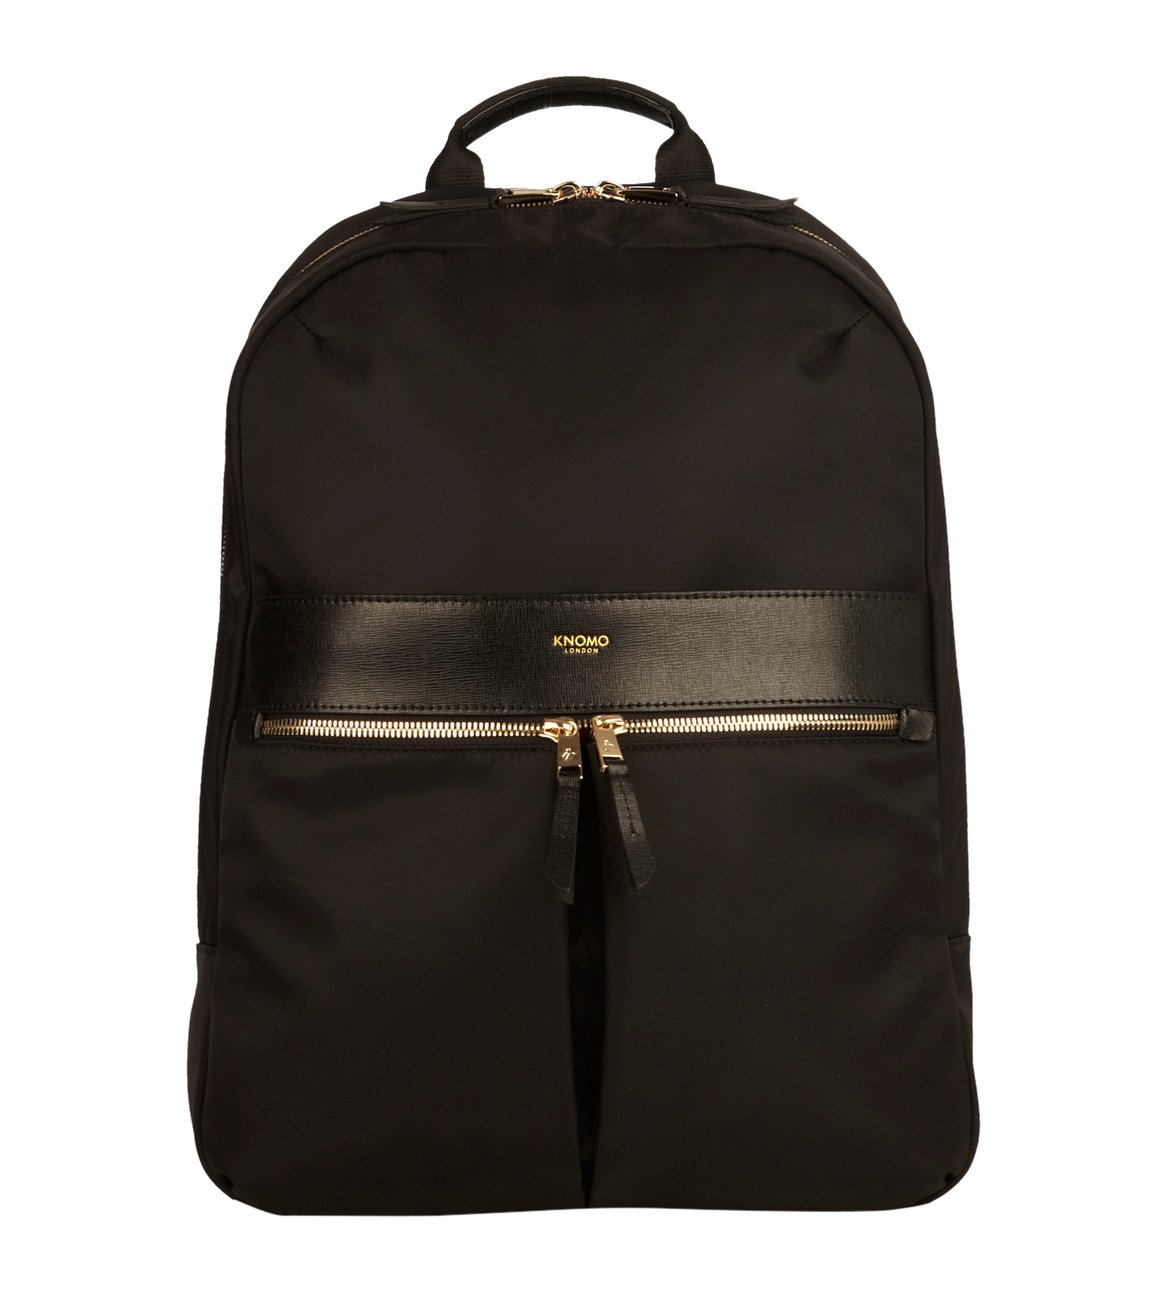 Knomo Luggage Beauchamp 14 Business Backpack 16.5 X 11.6 X 3.9, Black, One Size by Knomo